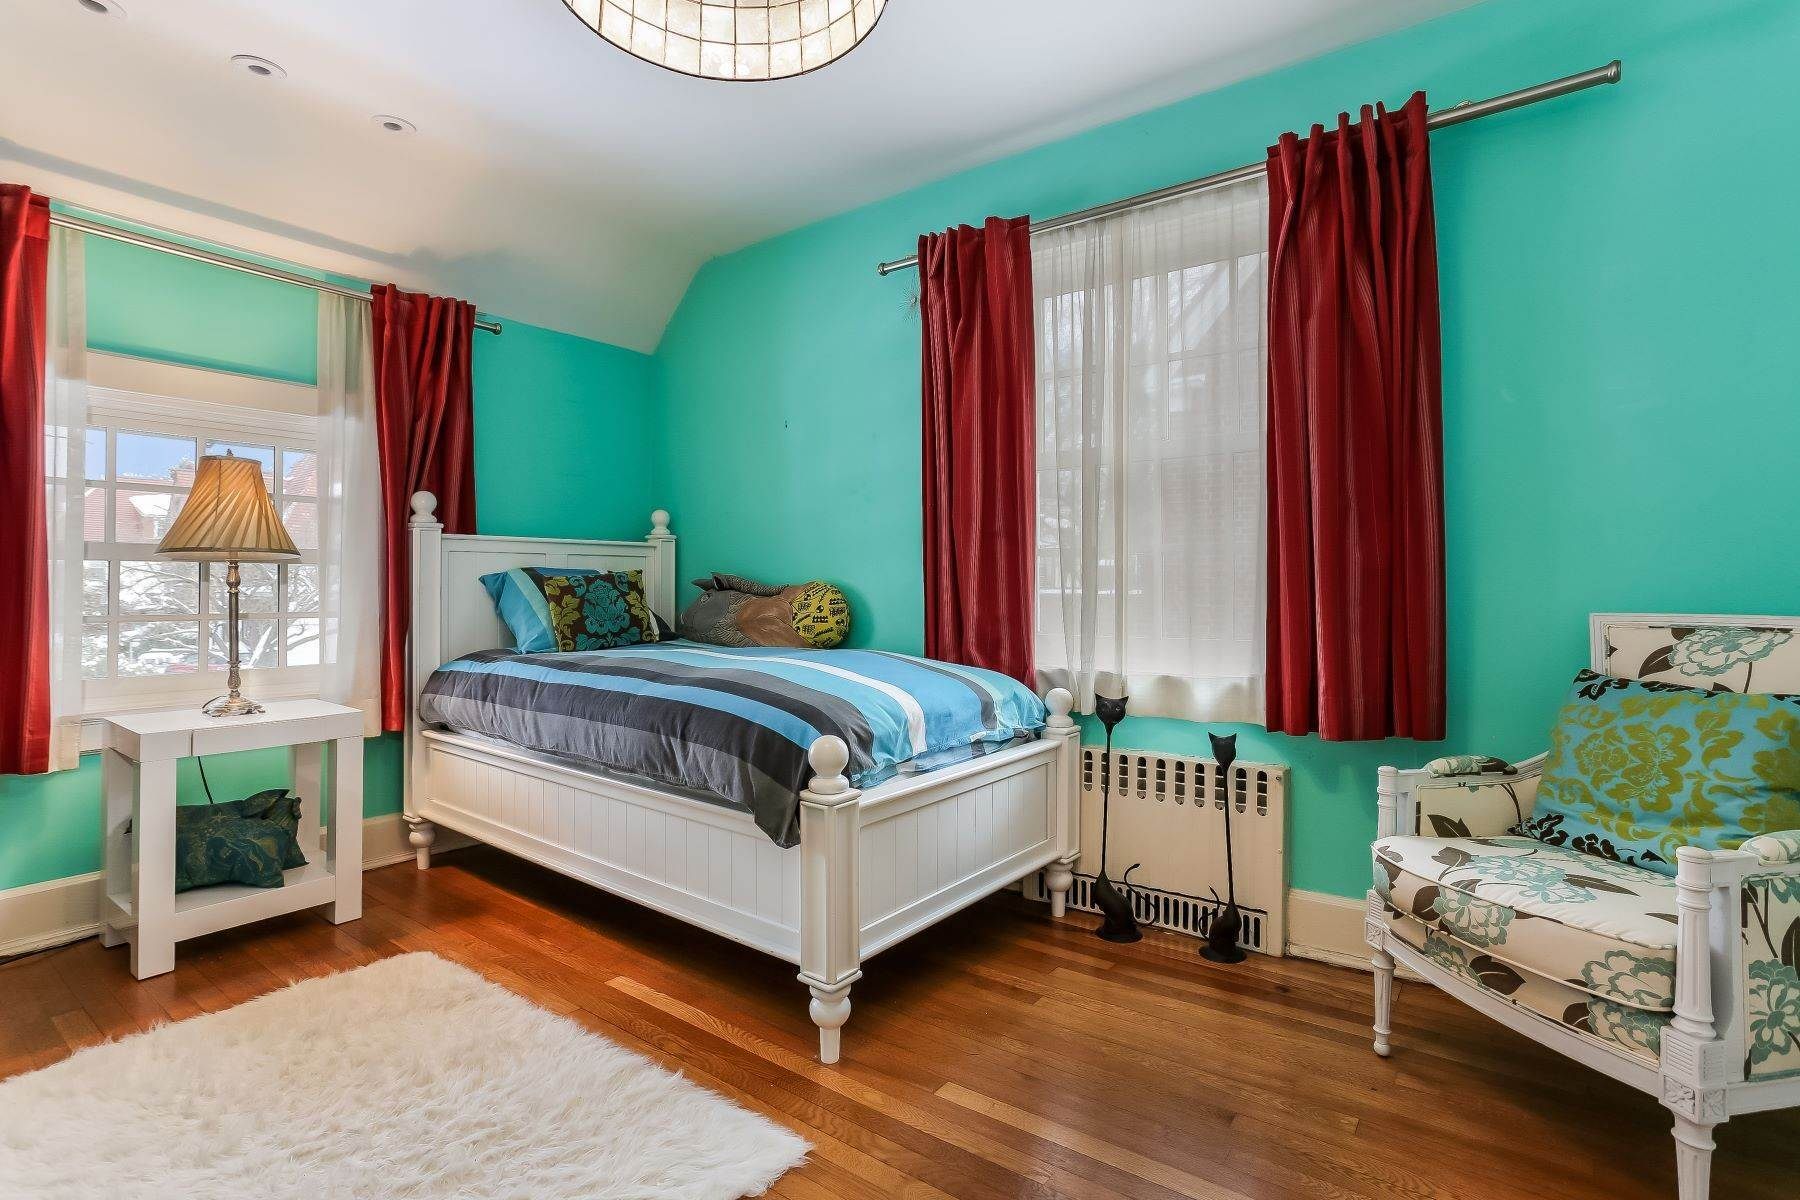 23. Single Family Homes for Sale at 'SPACIOUS STORYBOOK HOME, FULLY RENOVATED' 19 Groton Street, Forest Hills Gardens, Forest Hills, New York 11375 United States